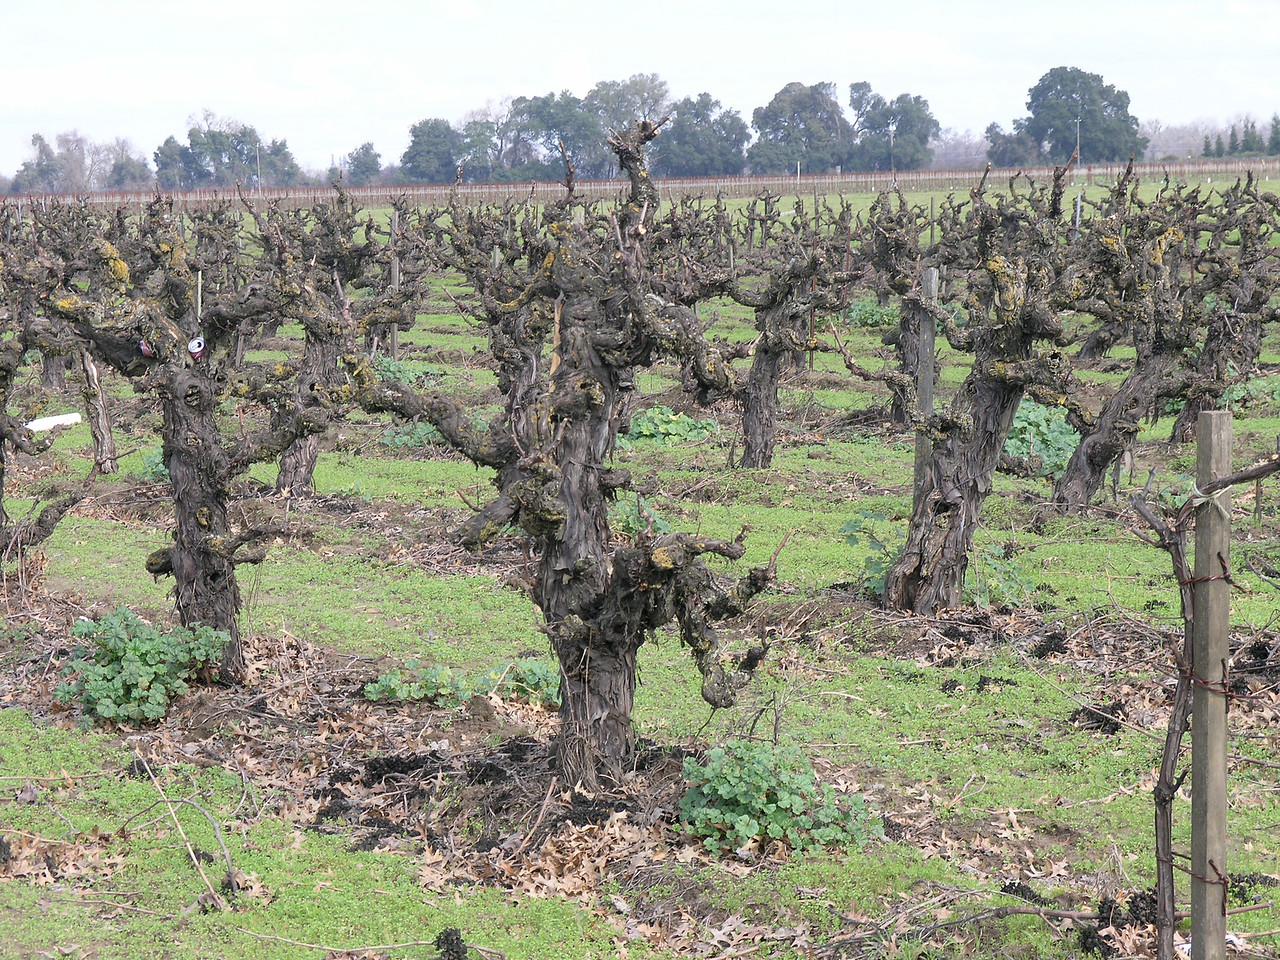 This is a stump pruned grape vineyard near Lockford east of Lodi.  This is probably Tokay grapes.  Near Lodi is where Tokay grapes do their best. The new vineyards are often wine grapes but this is probably 20+ years old when Tokay was the dominant variety here.